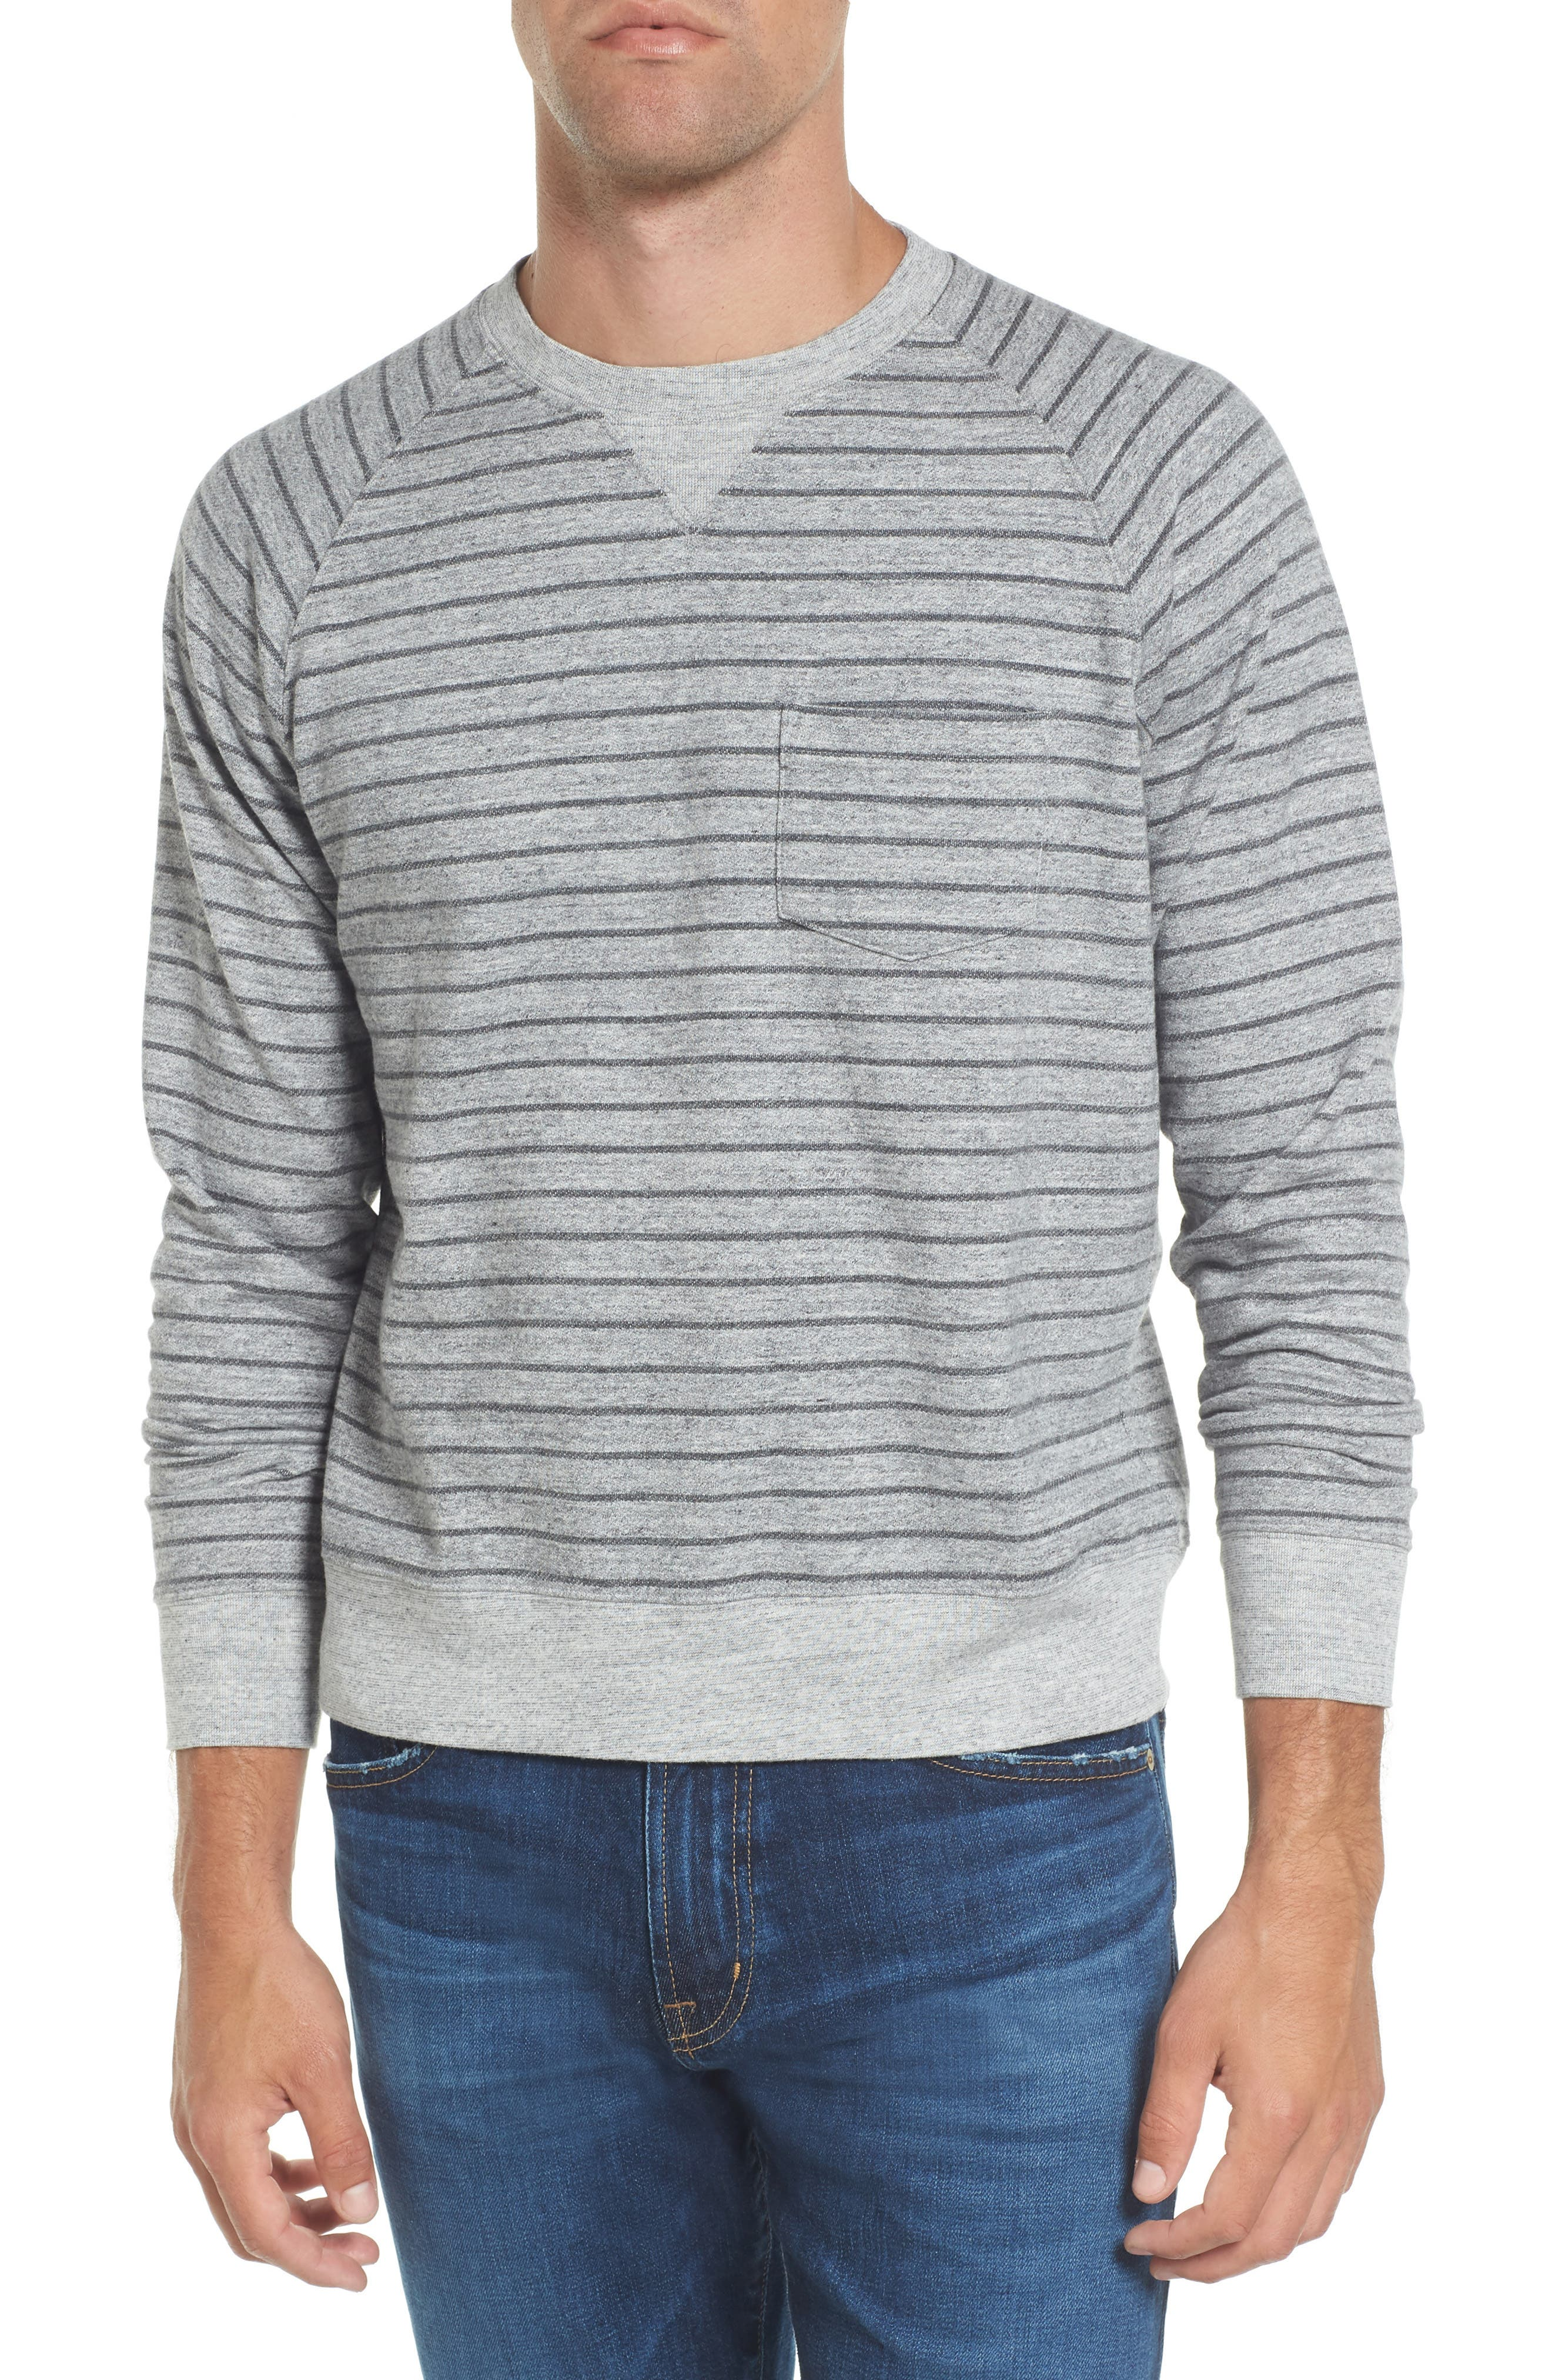 Palmer Modern Fit Athletic Stripe Sweatshirt,                             Main thumbnail 1, color,                             Gray Heather / Charcoal